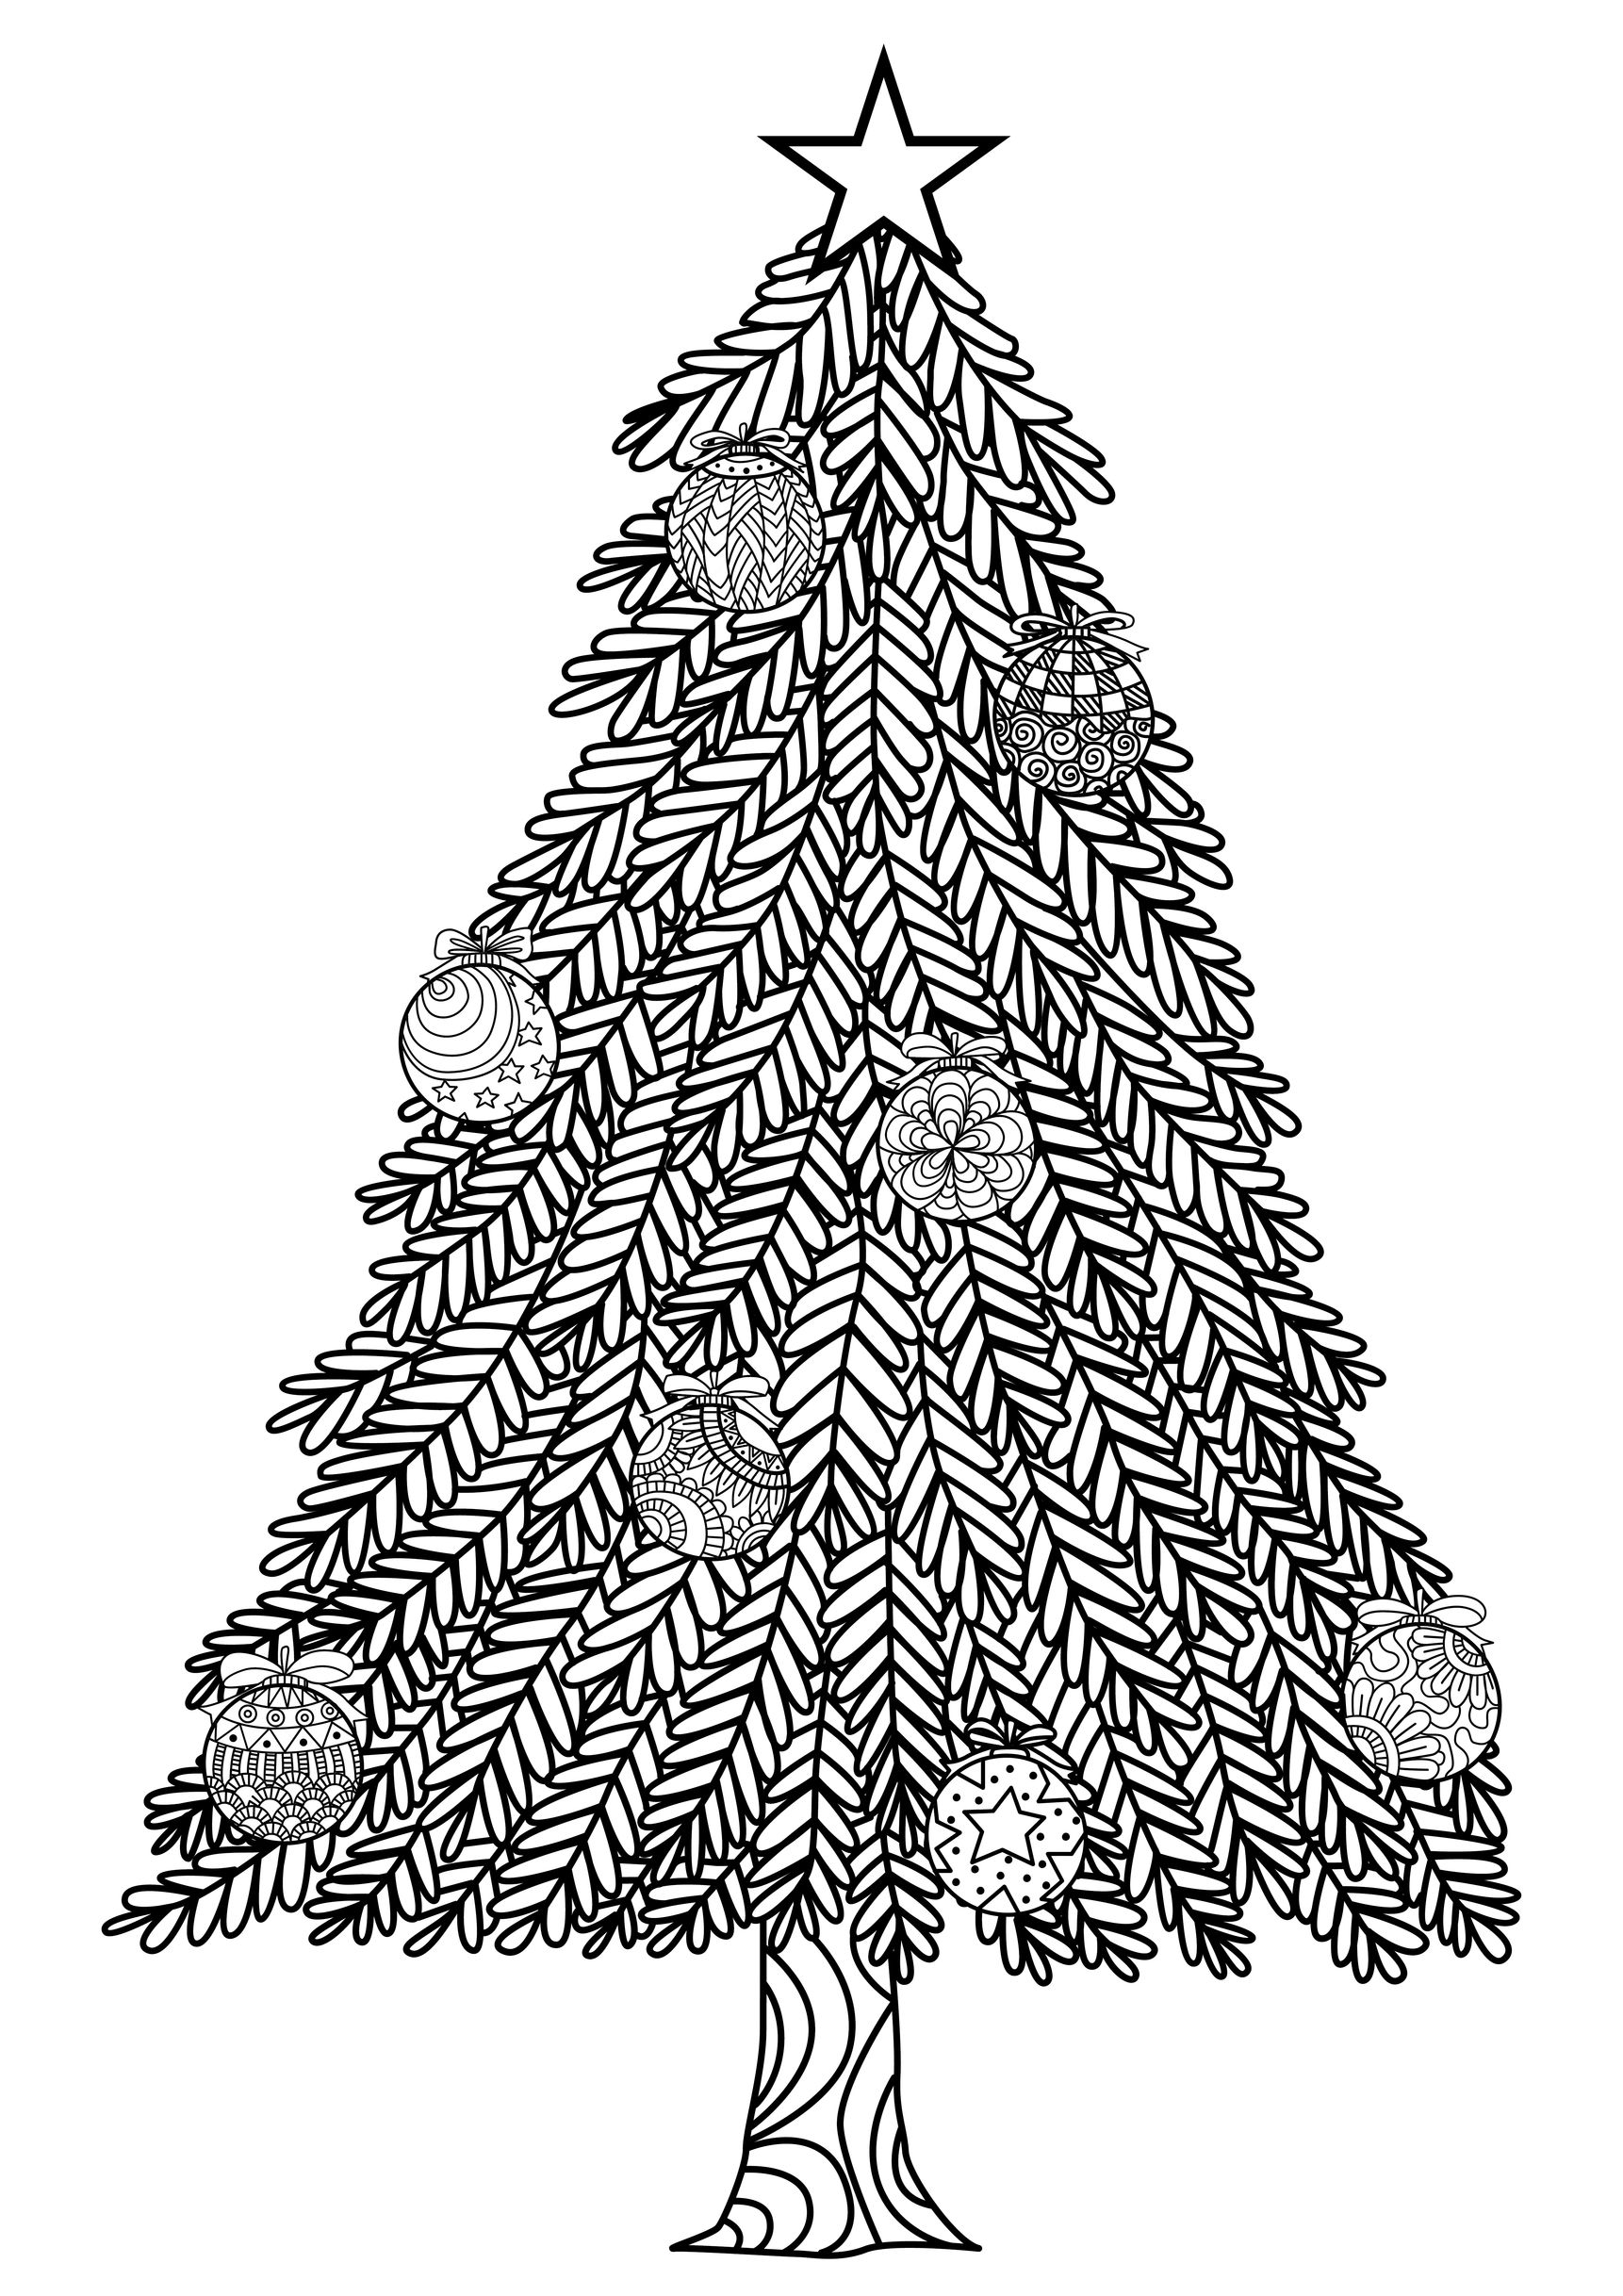 Christmas Tree Zentangle Style With Christmas Balls And A Big Star In The  Top  From